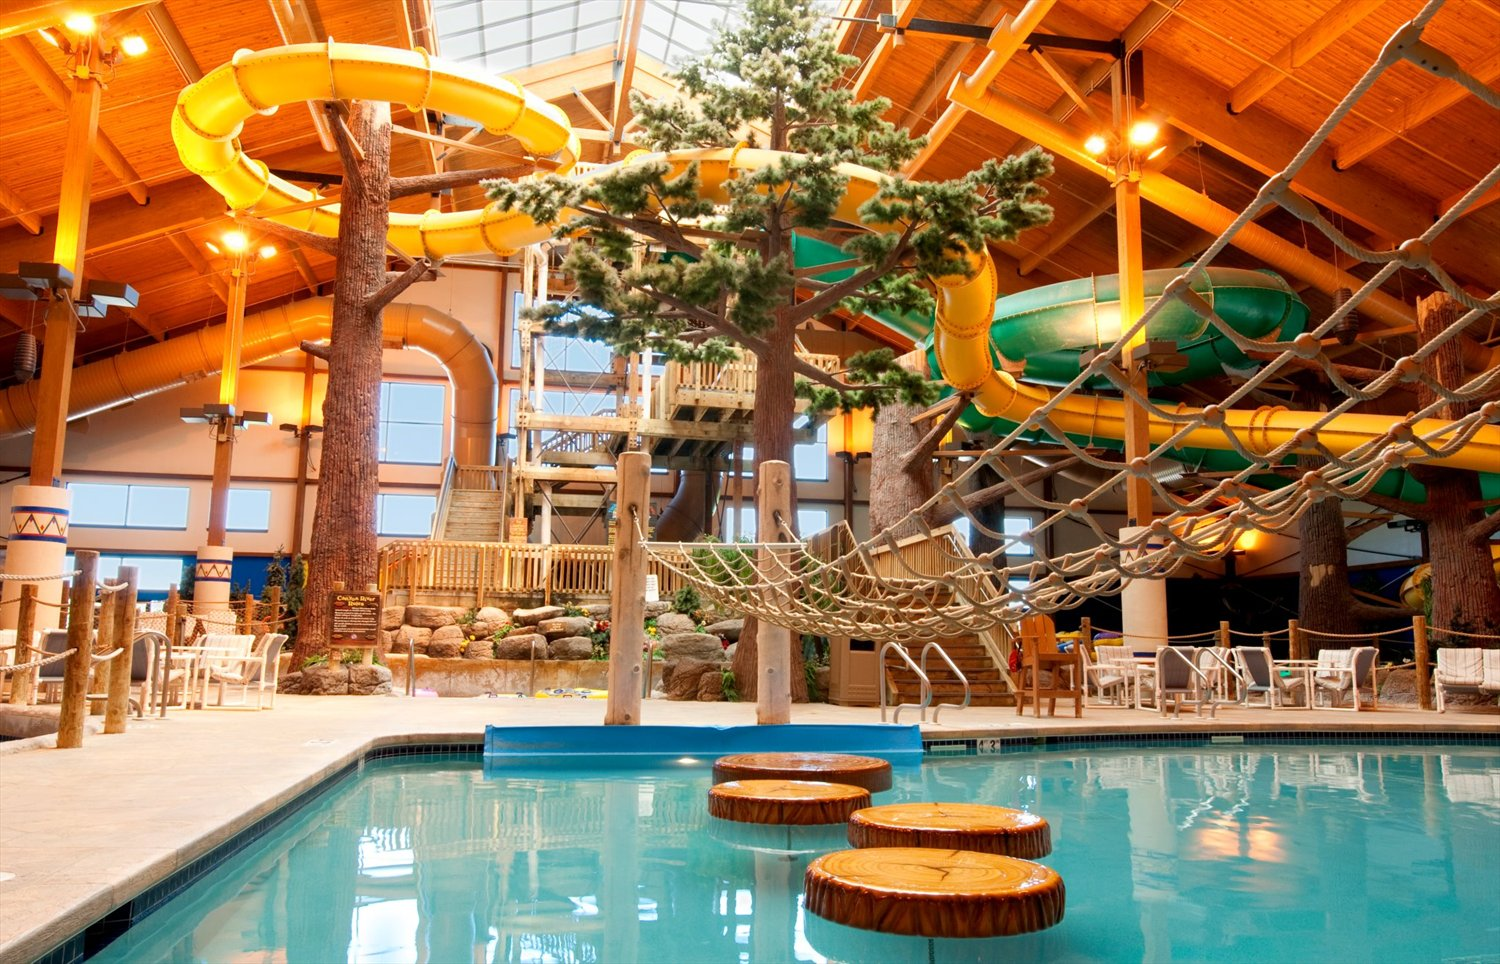 Timber Ridge Lodge & Water Park, Wisconsin